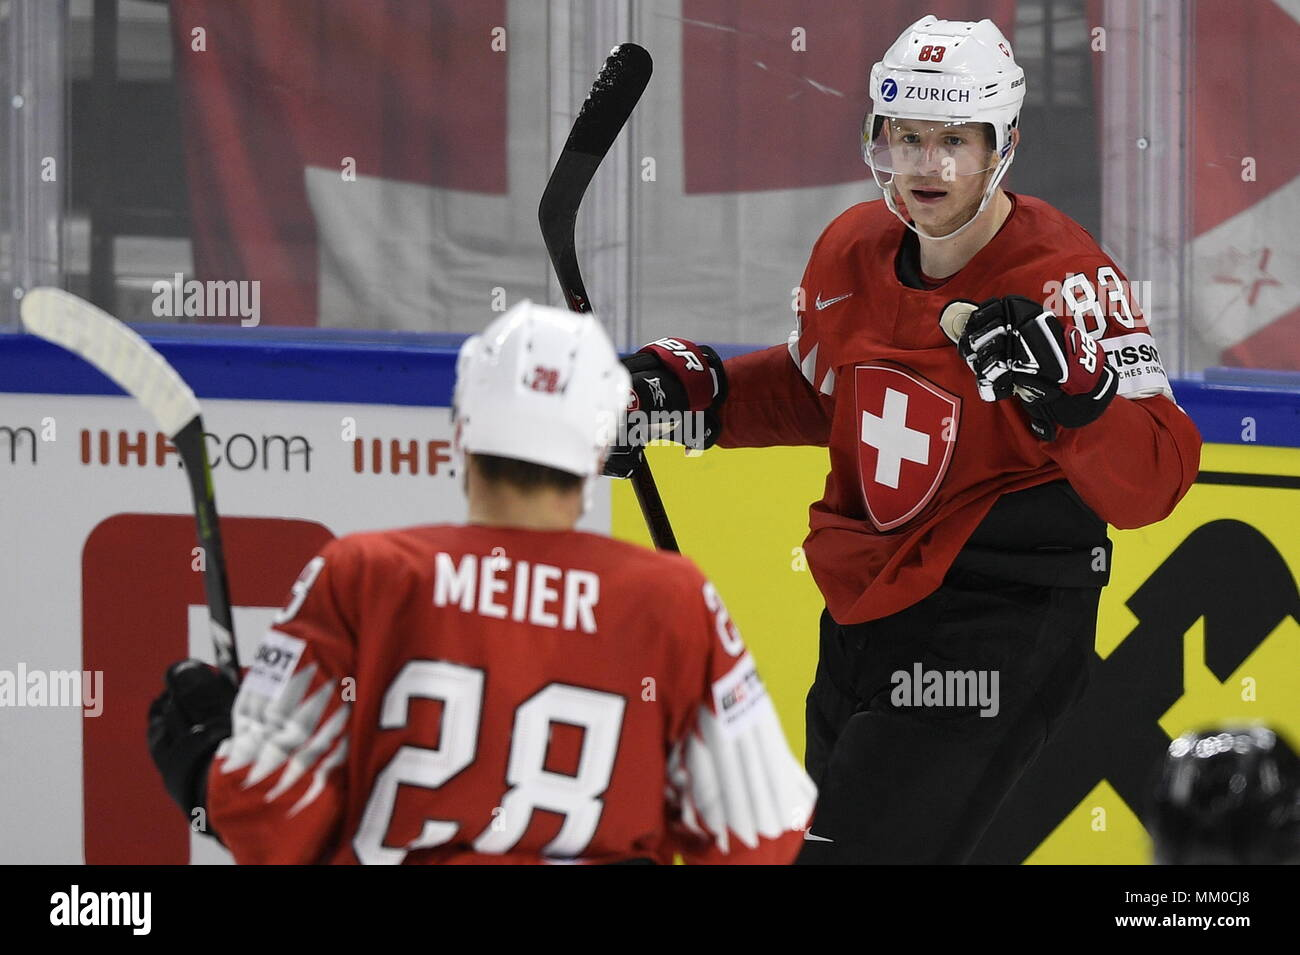 promo code 02aae 5bd13 L-R Timo Meier and Joel Vermin (both SUI) celebrate the goal ...